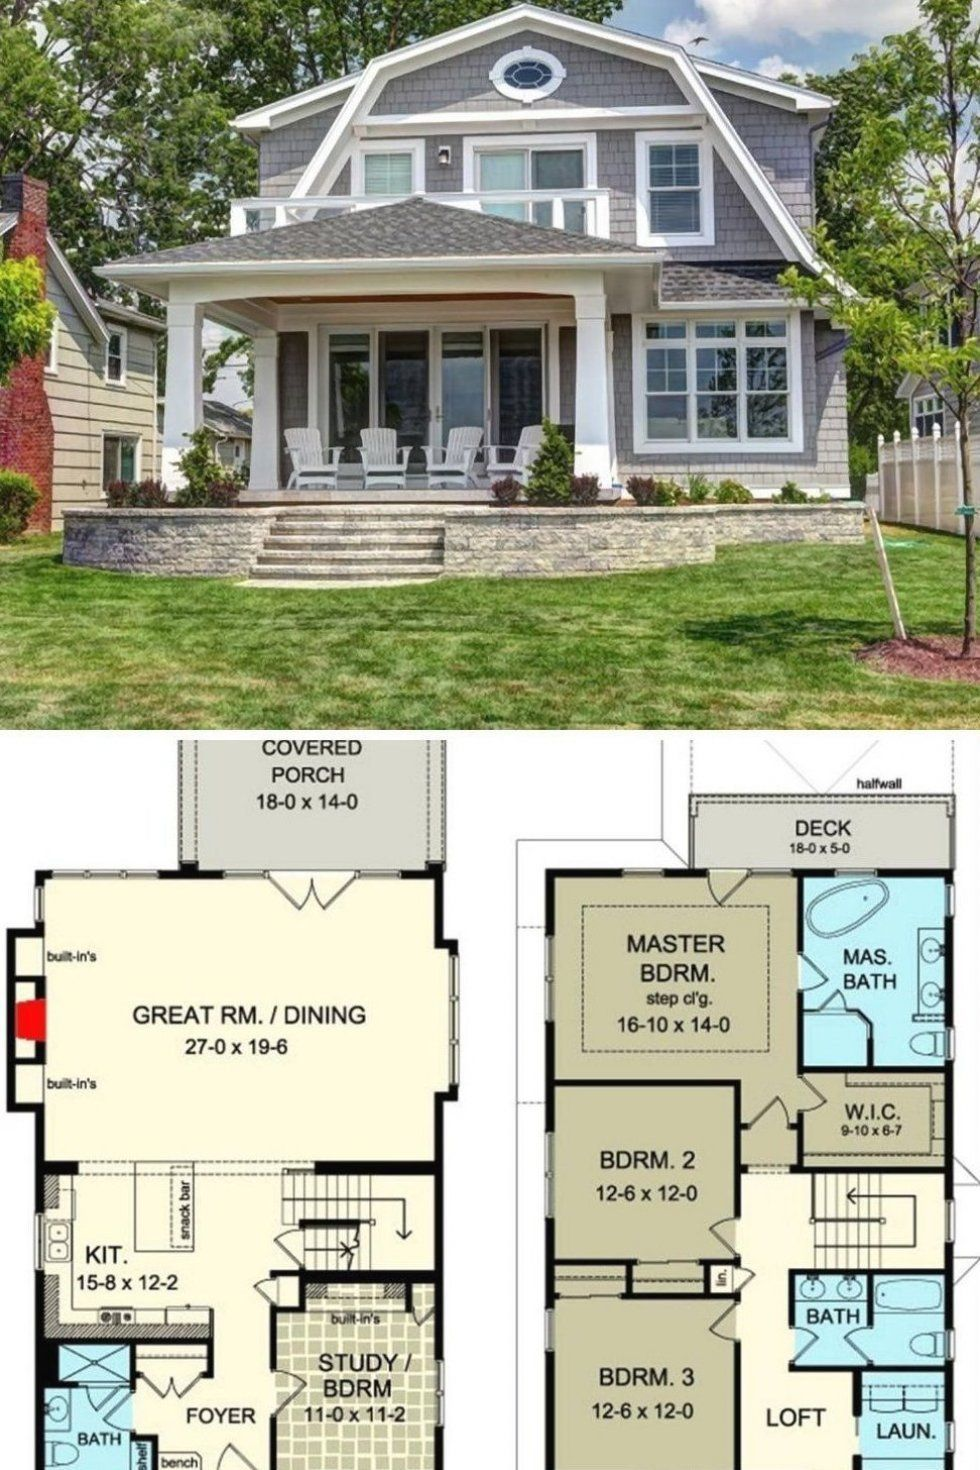 4 Bedroom Two Story Country Cottage Home With Gambrel Roof Floor Plan Country Cottage House Plans Cottage House Plans Craftsman Exterior